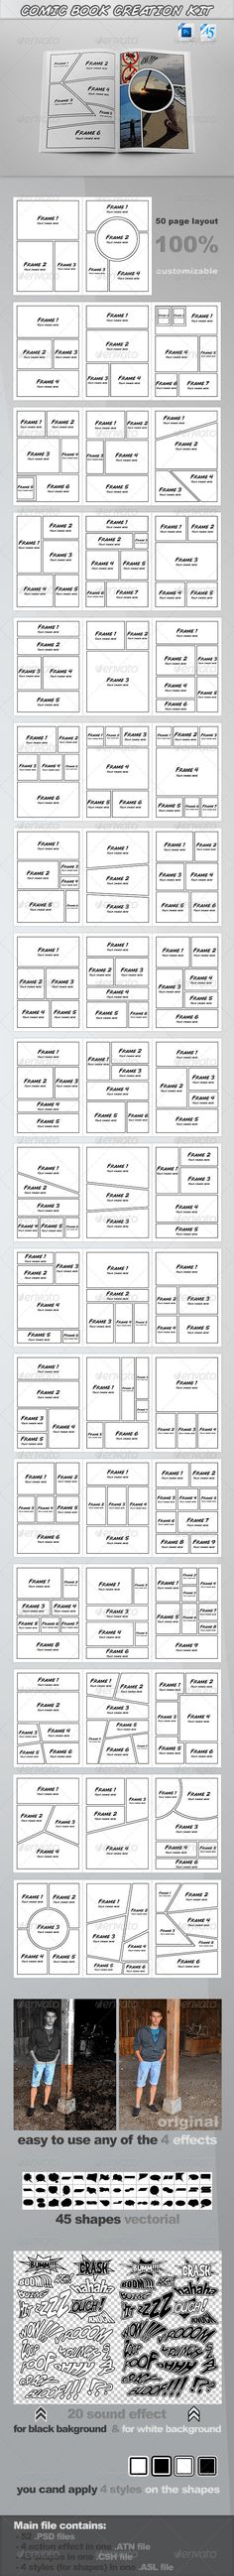 ComicBook Creation Kit #GraphicRiver Detail: 50 page